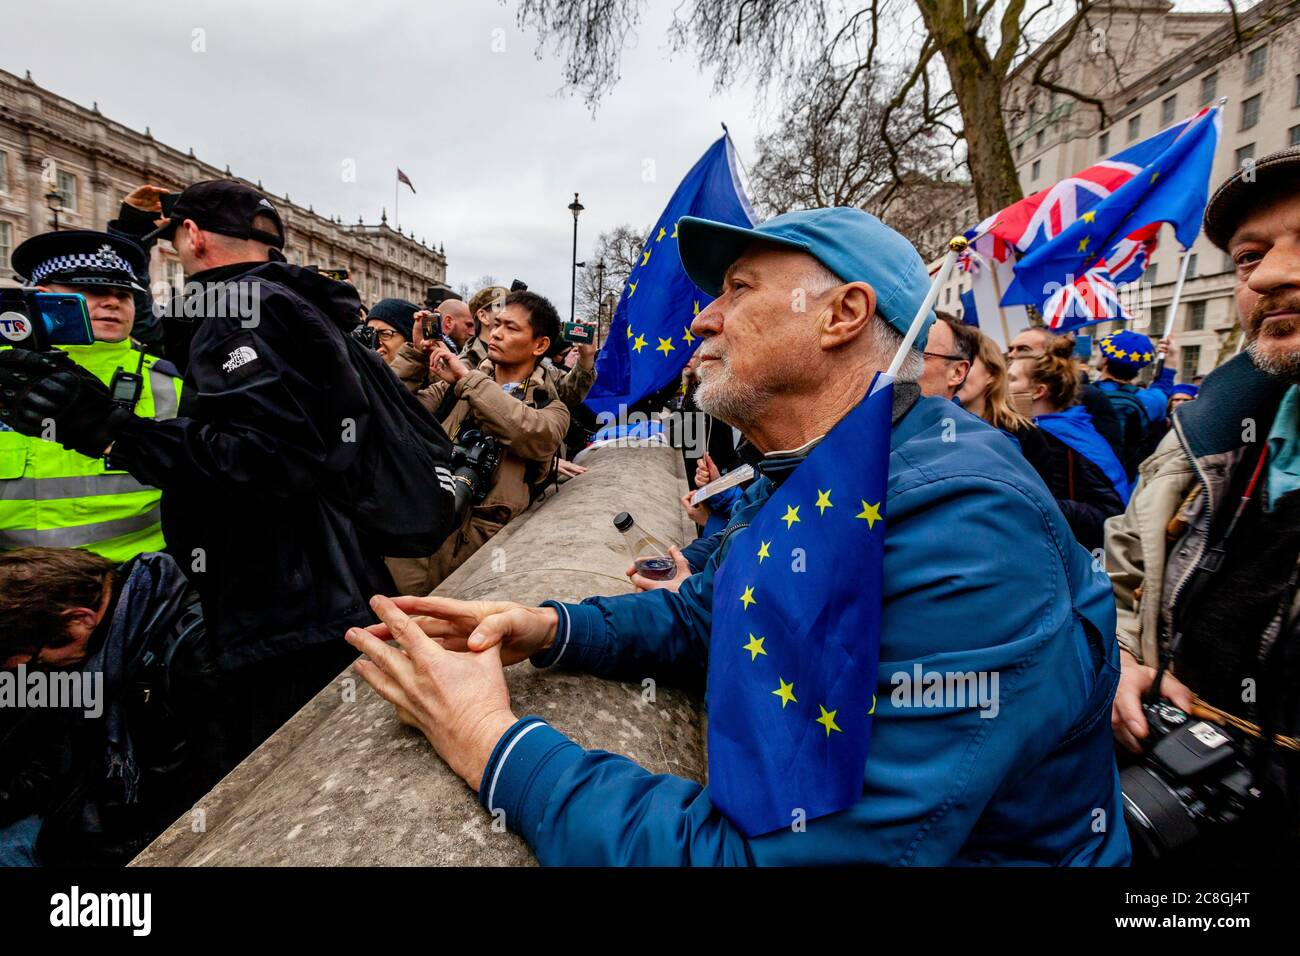 Pro EU supporters protest near Parliament Square on the day Britain is due to officially leave the EU, London, UK - Stock Photo